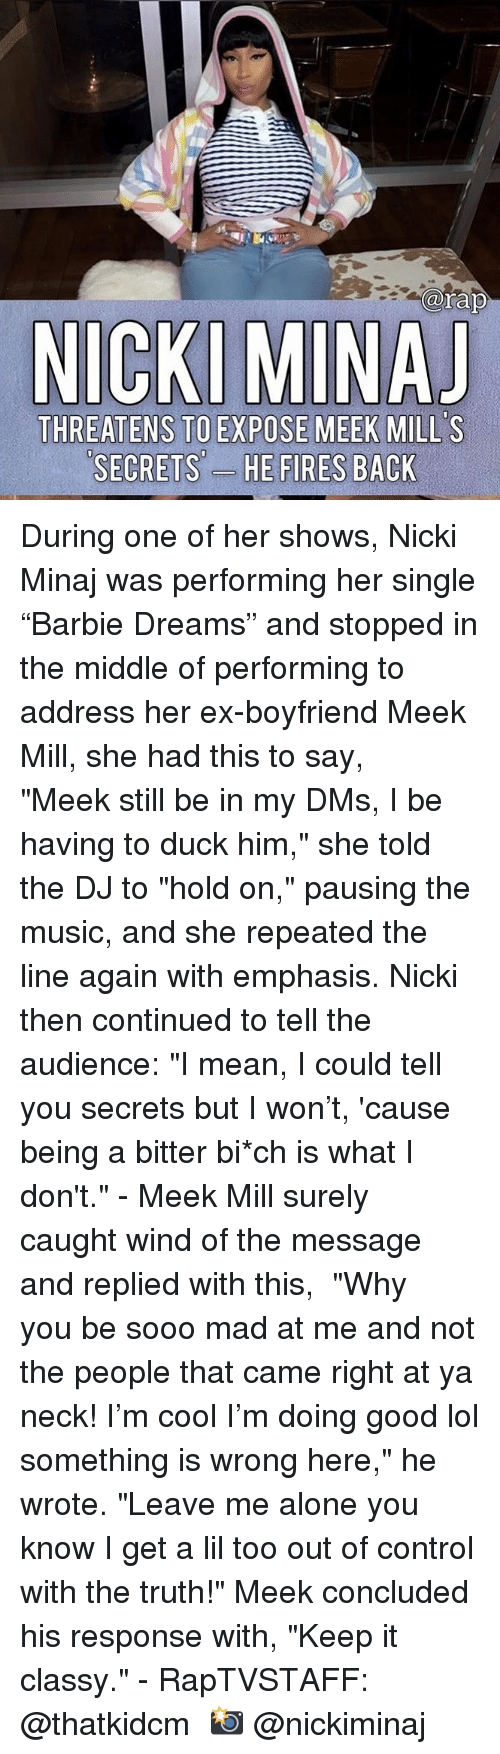 "nicki: arap  THREATENS TO EXPOSE MEEK MILL'S  SECRETS'-  ES During one of her shows, Nicki Minaj was performing her single ""Barbie Dreams"" and stopped in the middle of performing to address her ex-boyfriend Meek Mill, she had this to say, ⁣ ⁣ ""Meek still be in my DMs, I be having to duck him,"" she told the DJ to ""hold on,"" pausing the music, and she repeated the line again with emphasis. Nicki then continued to tell the audience: ""I mean, I could tell you secrets but I won't, 'cause being a bitter bi*ch is what I don't.""⁣ -⁣ Meek Mill surely caught wind of the message and replied with this,⁣ ⁣ ""Why you be sooo mad at me and not the people that came right at ya neck! I'm cool I'm doing good lol something is wrong here,"" he wrote. ""Leave me alone you know I get a lil too out of control with the truth!"" Meek concluded his response with, ""Keep it classy.""⁣ -⁣ RapTVSTAFF: @thatkidcm⁣ 📸 @nickiminaj"